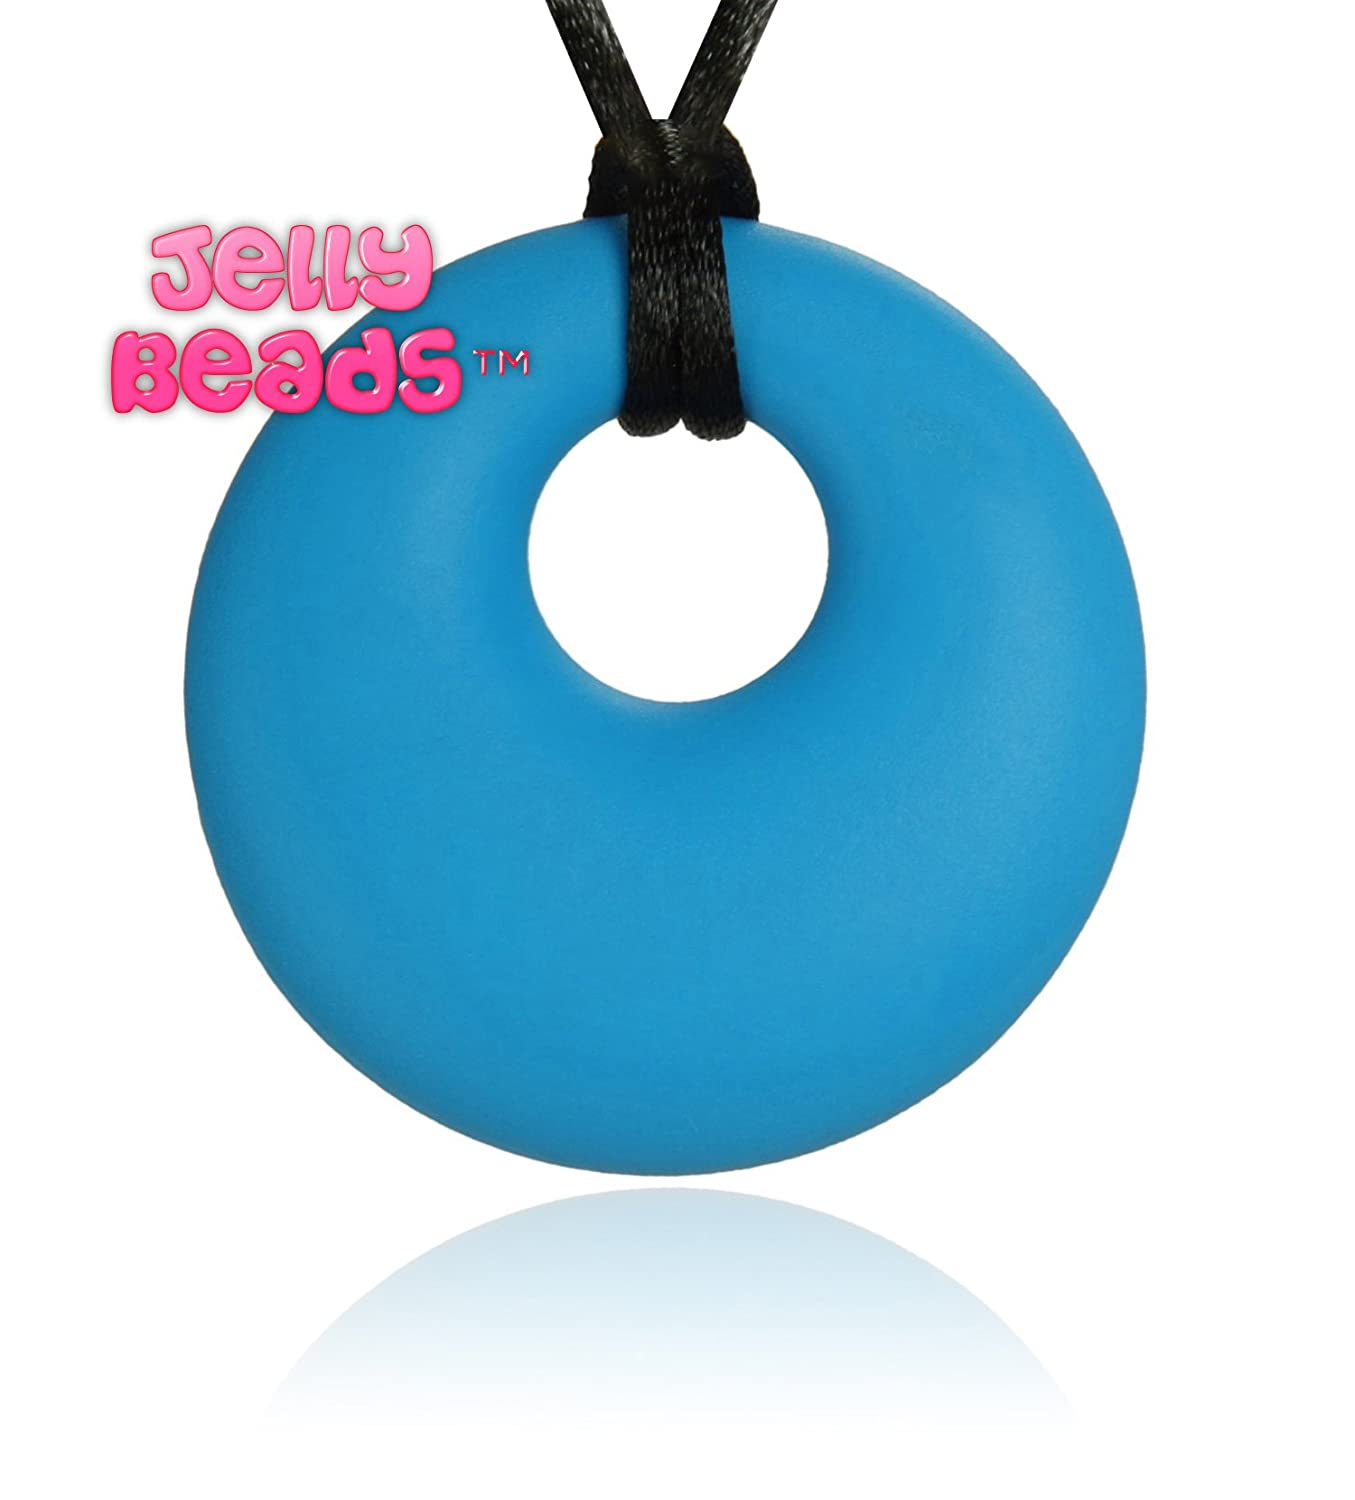 Jelly Beads Ares Silicone Teething Necklace - Teether Ring Donut Pendant for Mom (Deep Sky Blue) by Jelly Beads   B00RPP0GV6